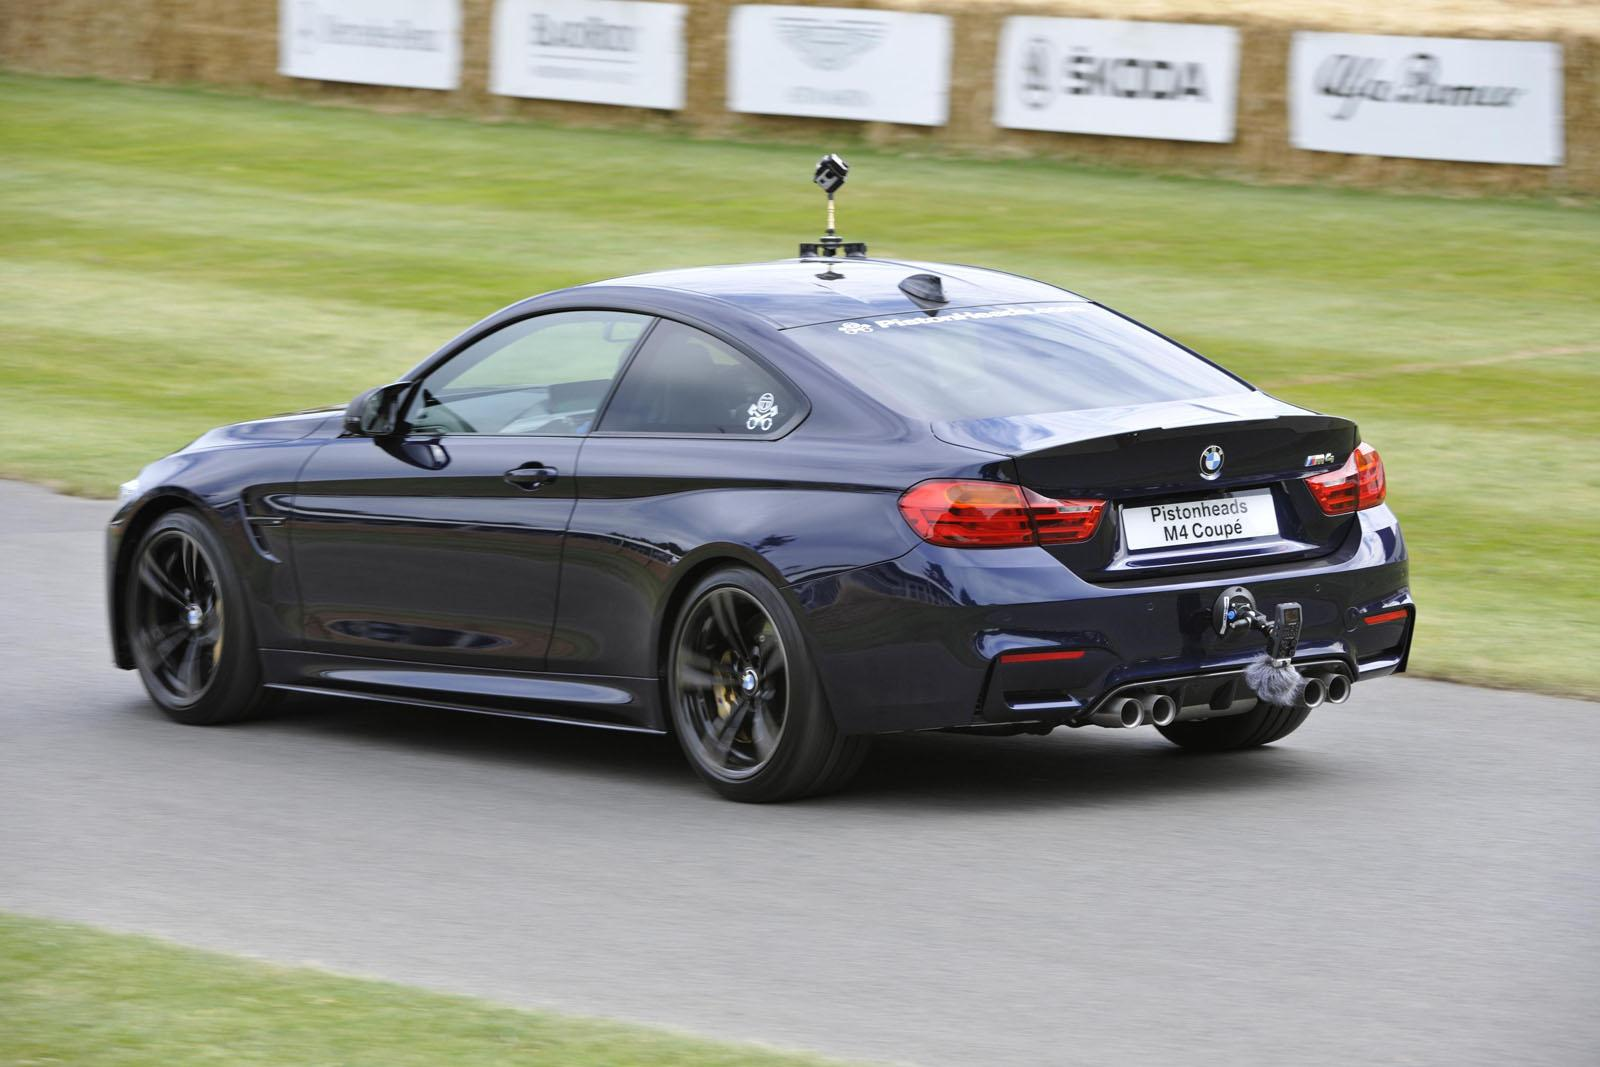 goodwood fos 2014 bmw individual m4 coupe gtspirit. Black Bedroom Furniture Sets. Home Design Ideas